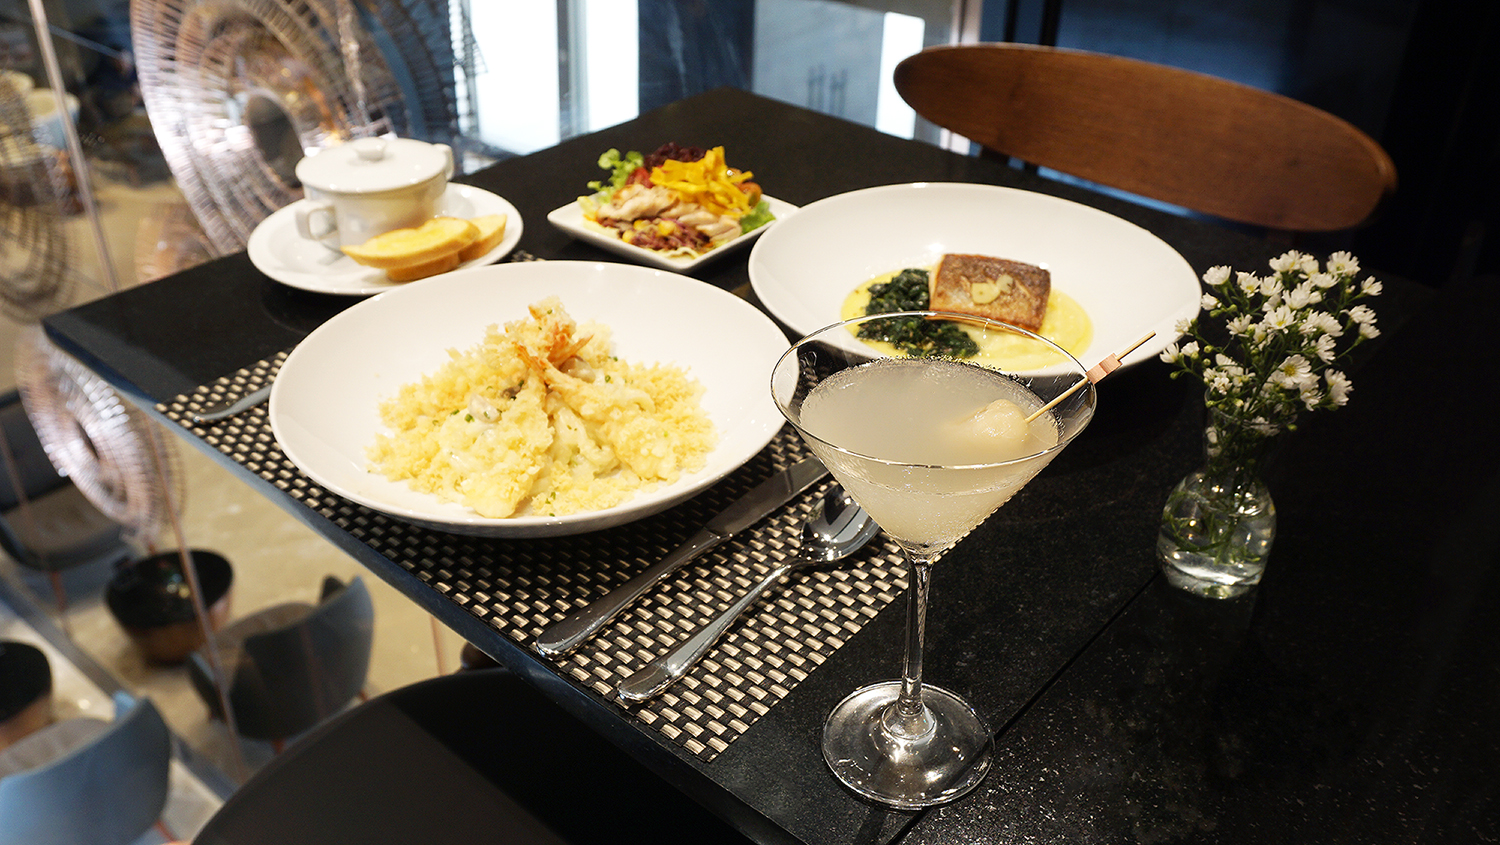 Hotel Verve S-SENBrasserie and More Fit Your Style Lunch 20